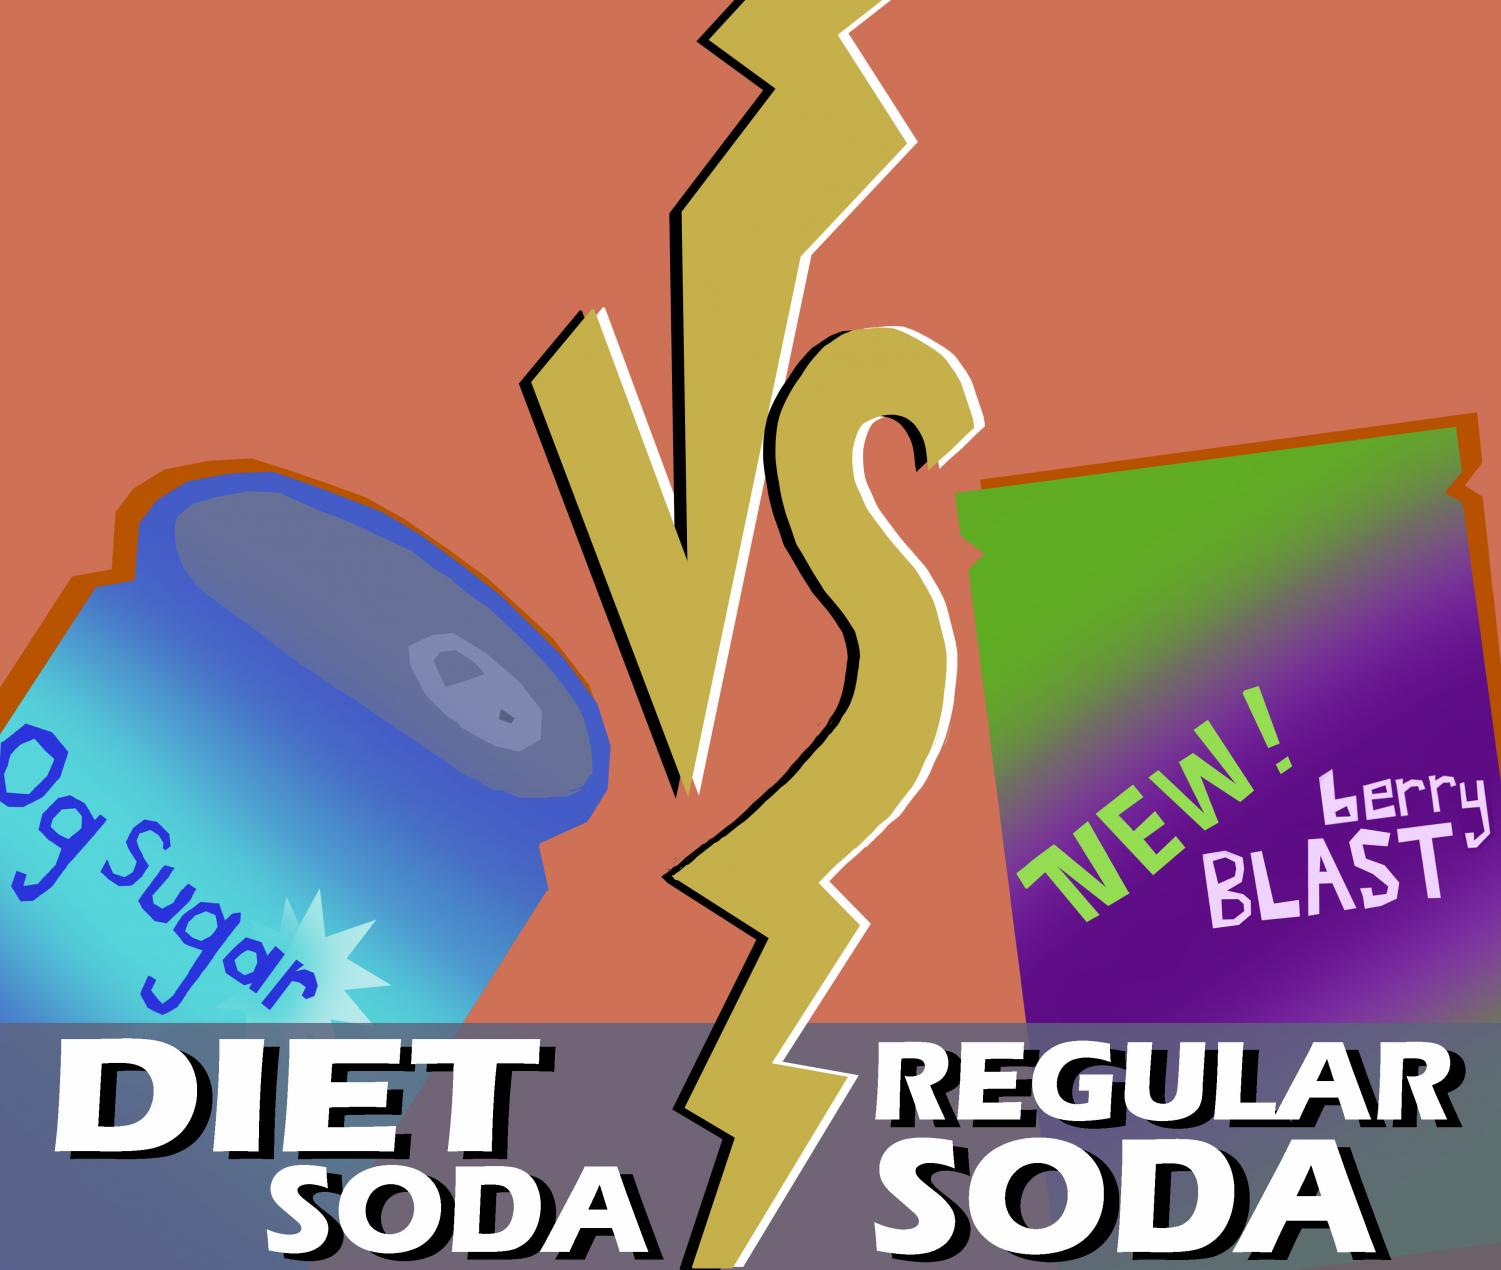 THERE IS NO GOOD OPTION: The health risks of all sodas make even one glass far too much.